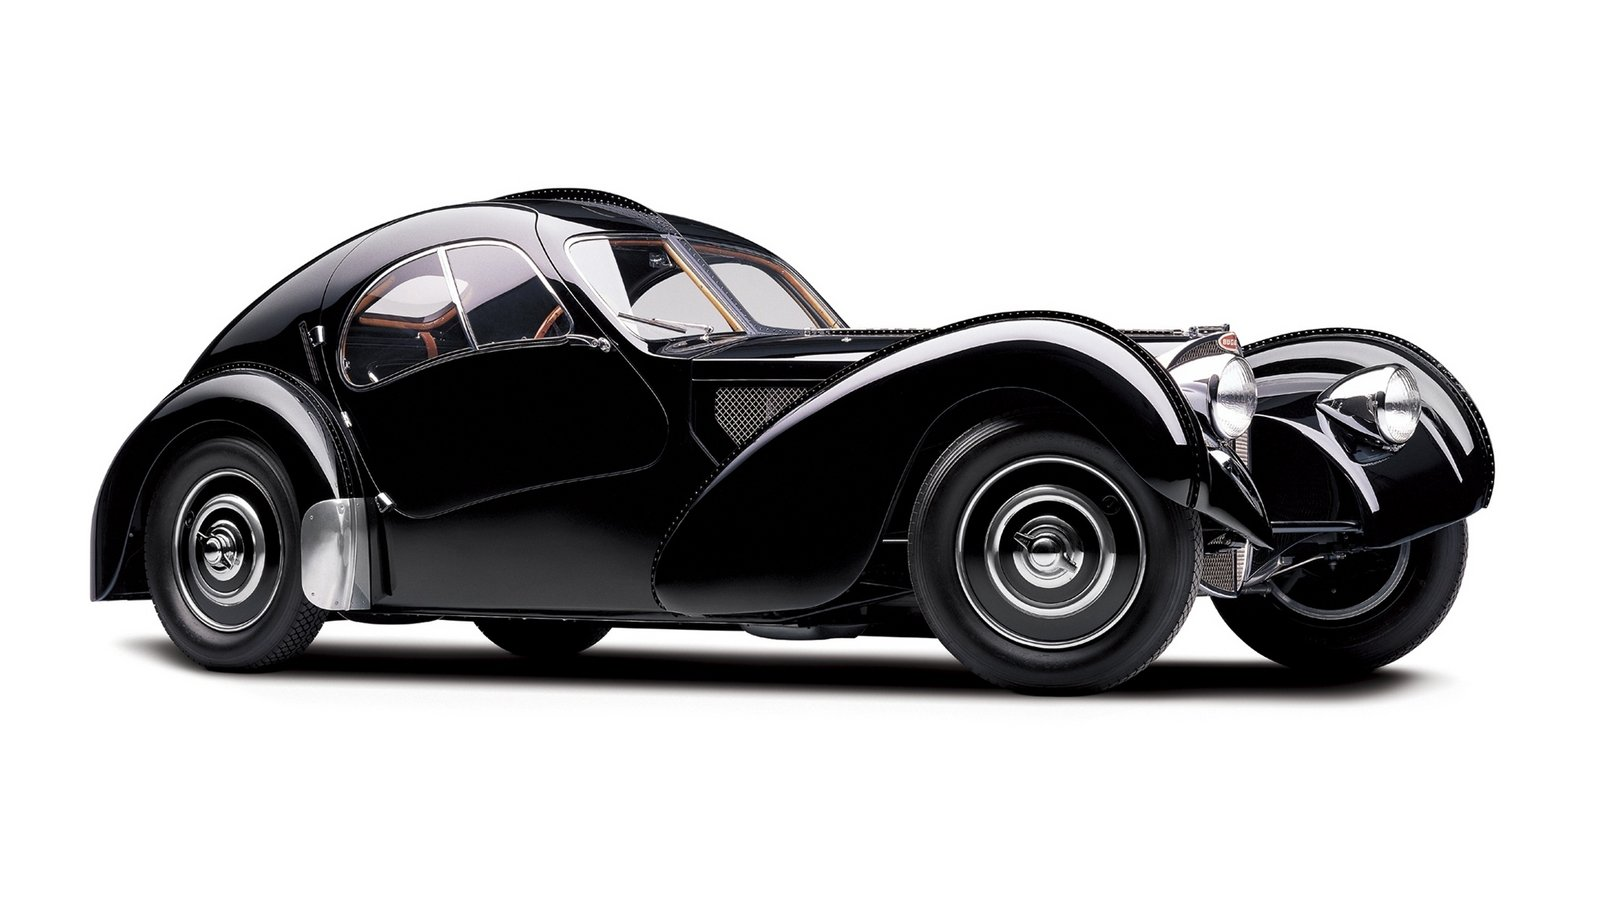 1933 1938 bugatti 57sc atlantic coupe picture 660261 car review top speed. Black Bedroom Furniture Sets. Home Design Ideas